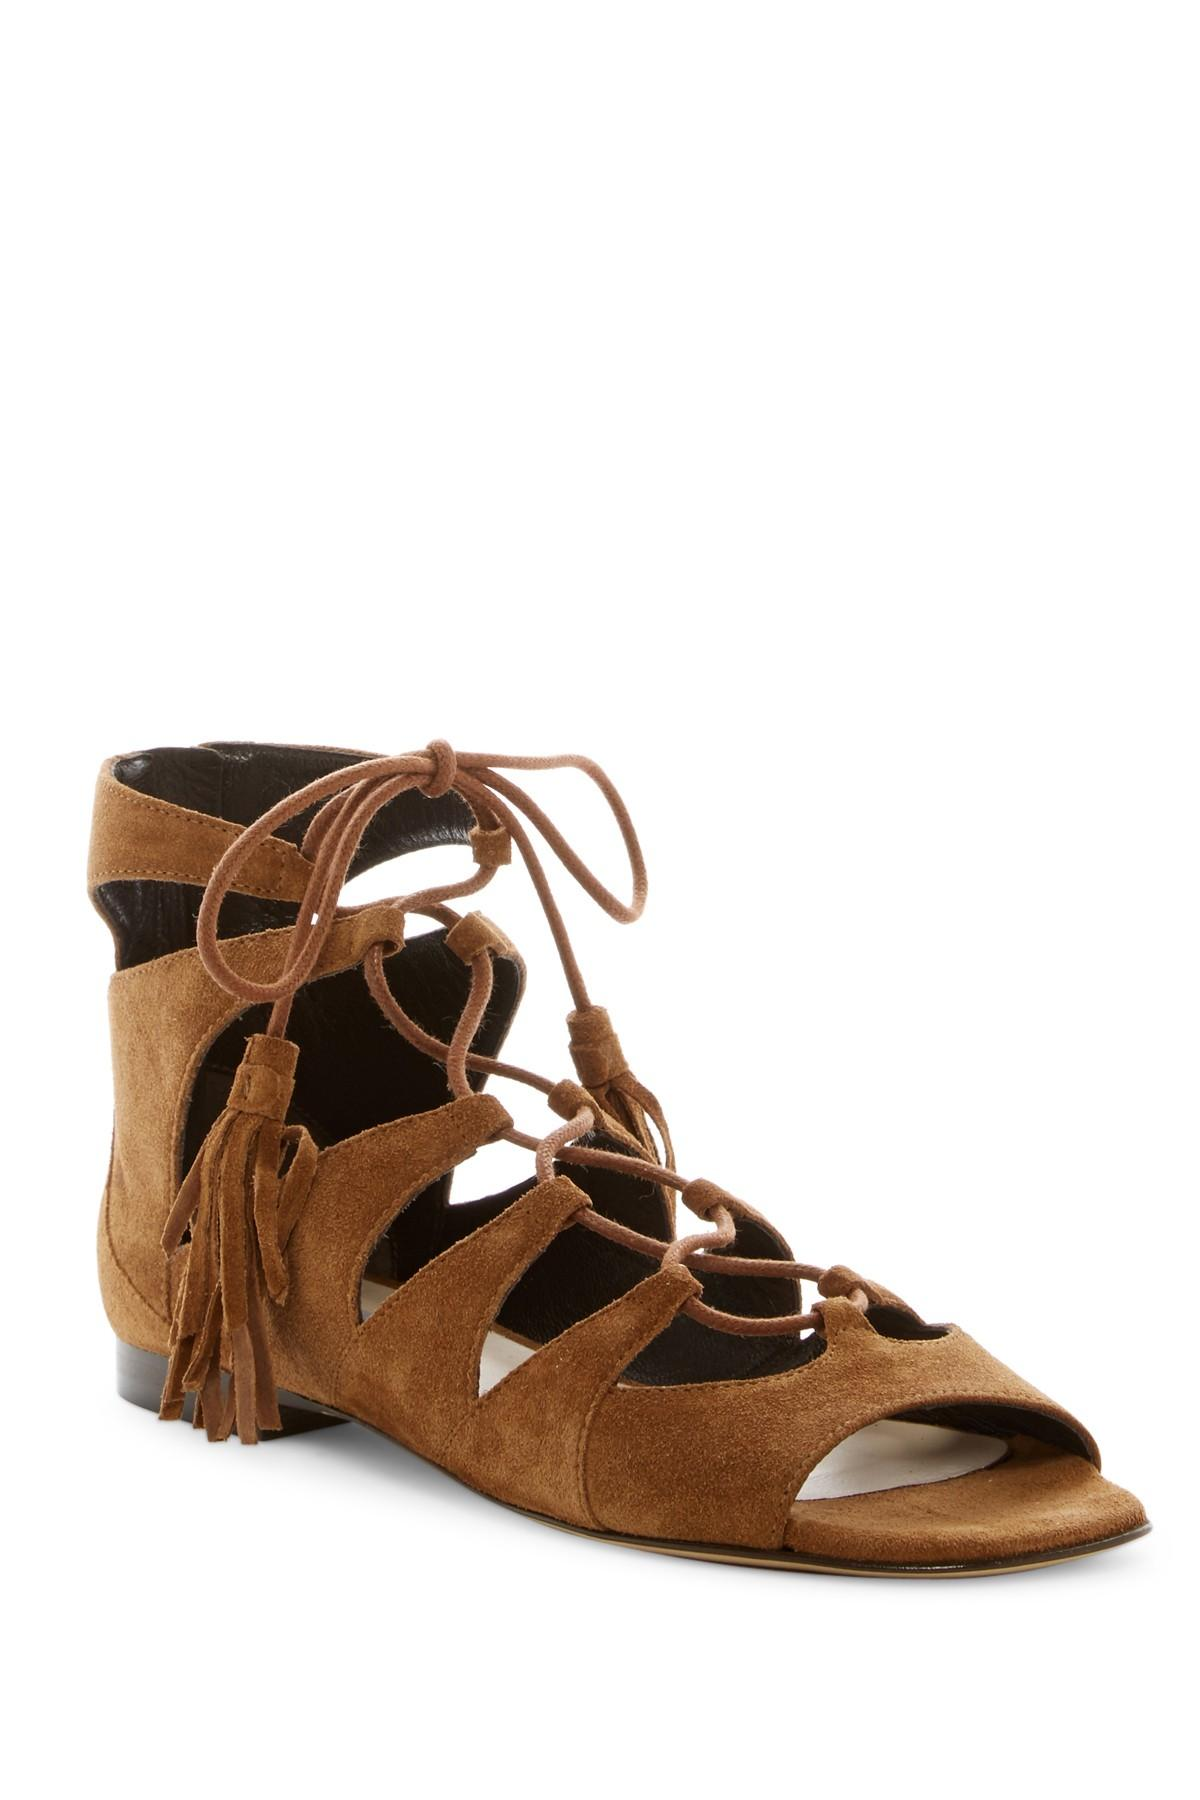 Coach Womens Shoes Nordstrom